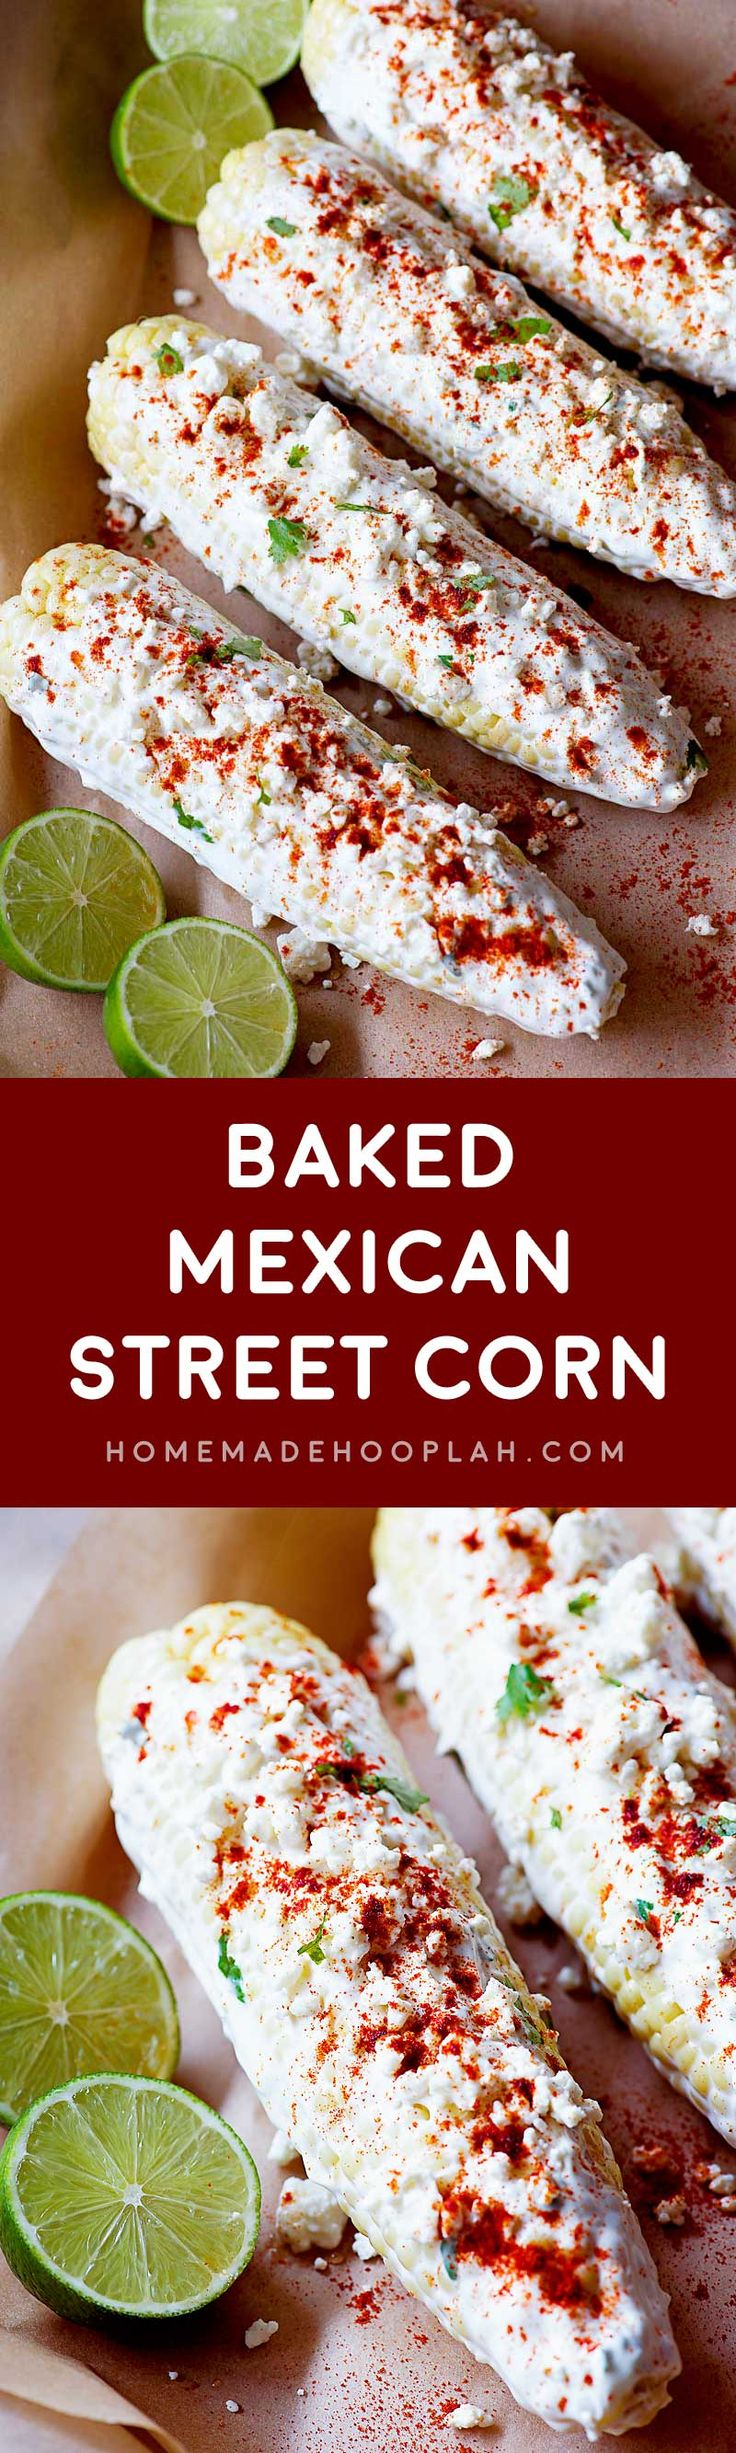 Baked Mexican Street Corn! Classic Elotes flavored with feta cheese and smoked paprika. The corn is also baked, making it easy to make this classic summer food year round! | HomemadeHooplah.com: